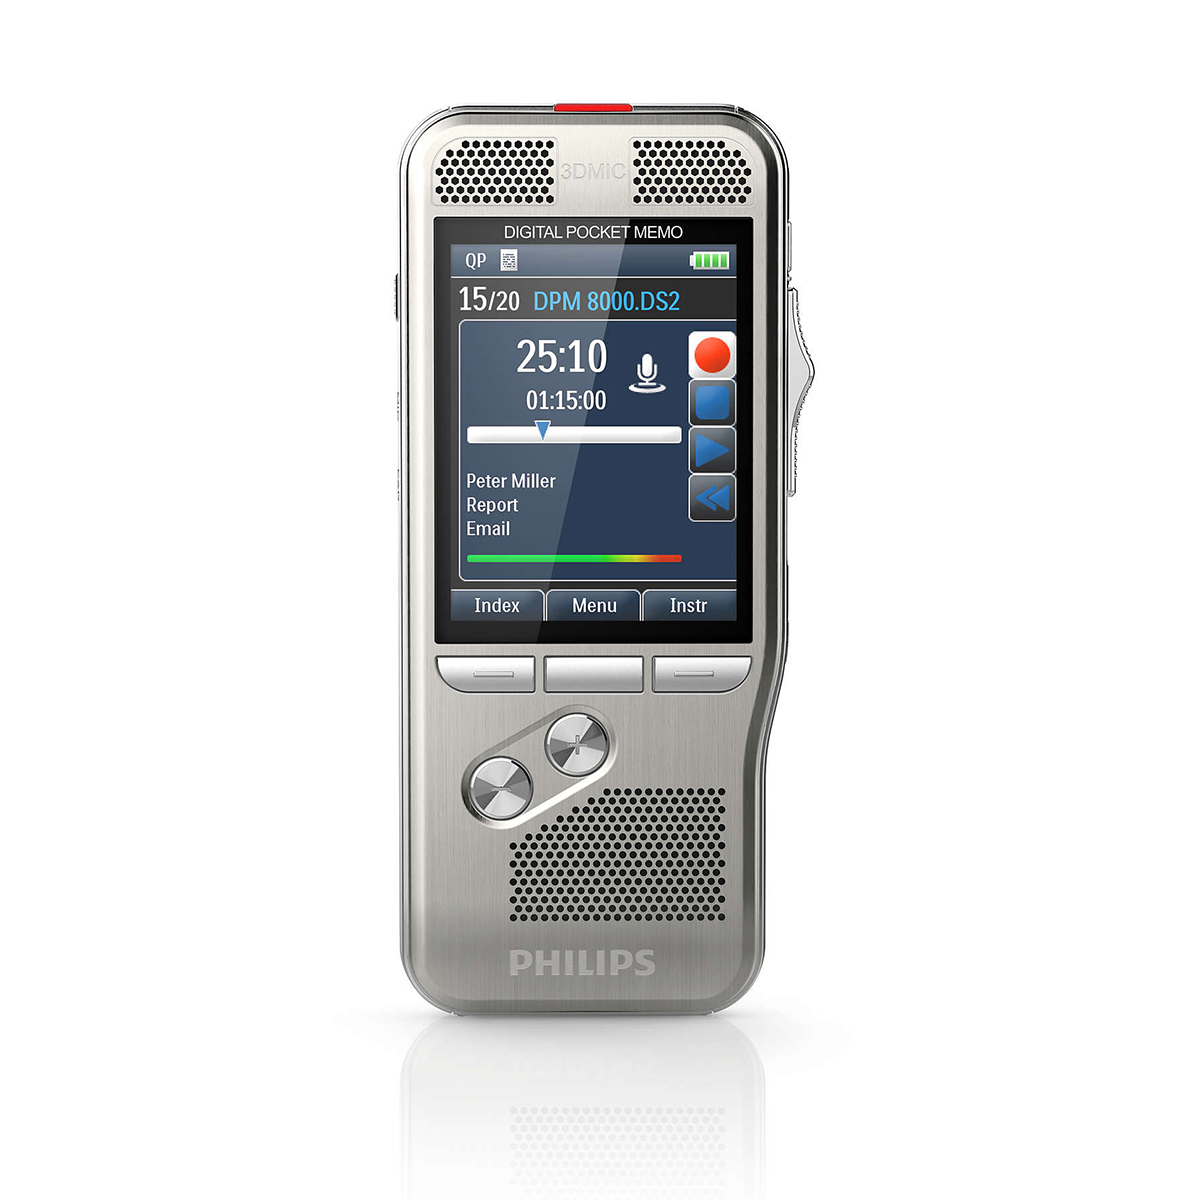 Philips DPM8000 Pocket Memo